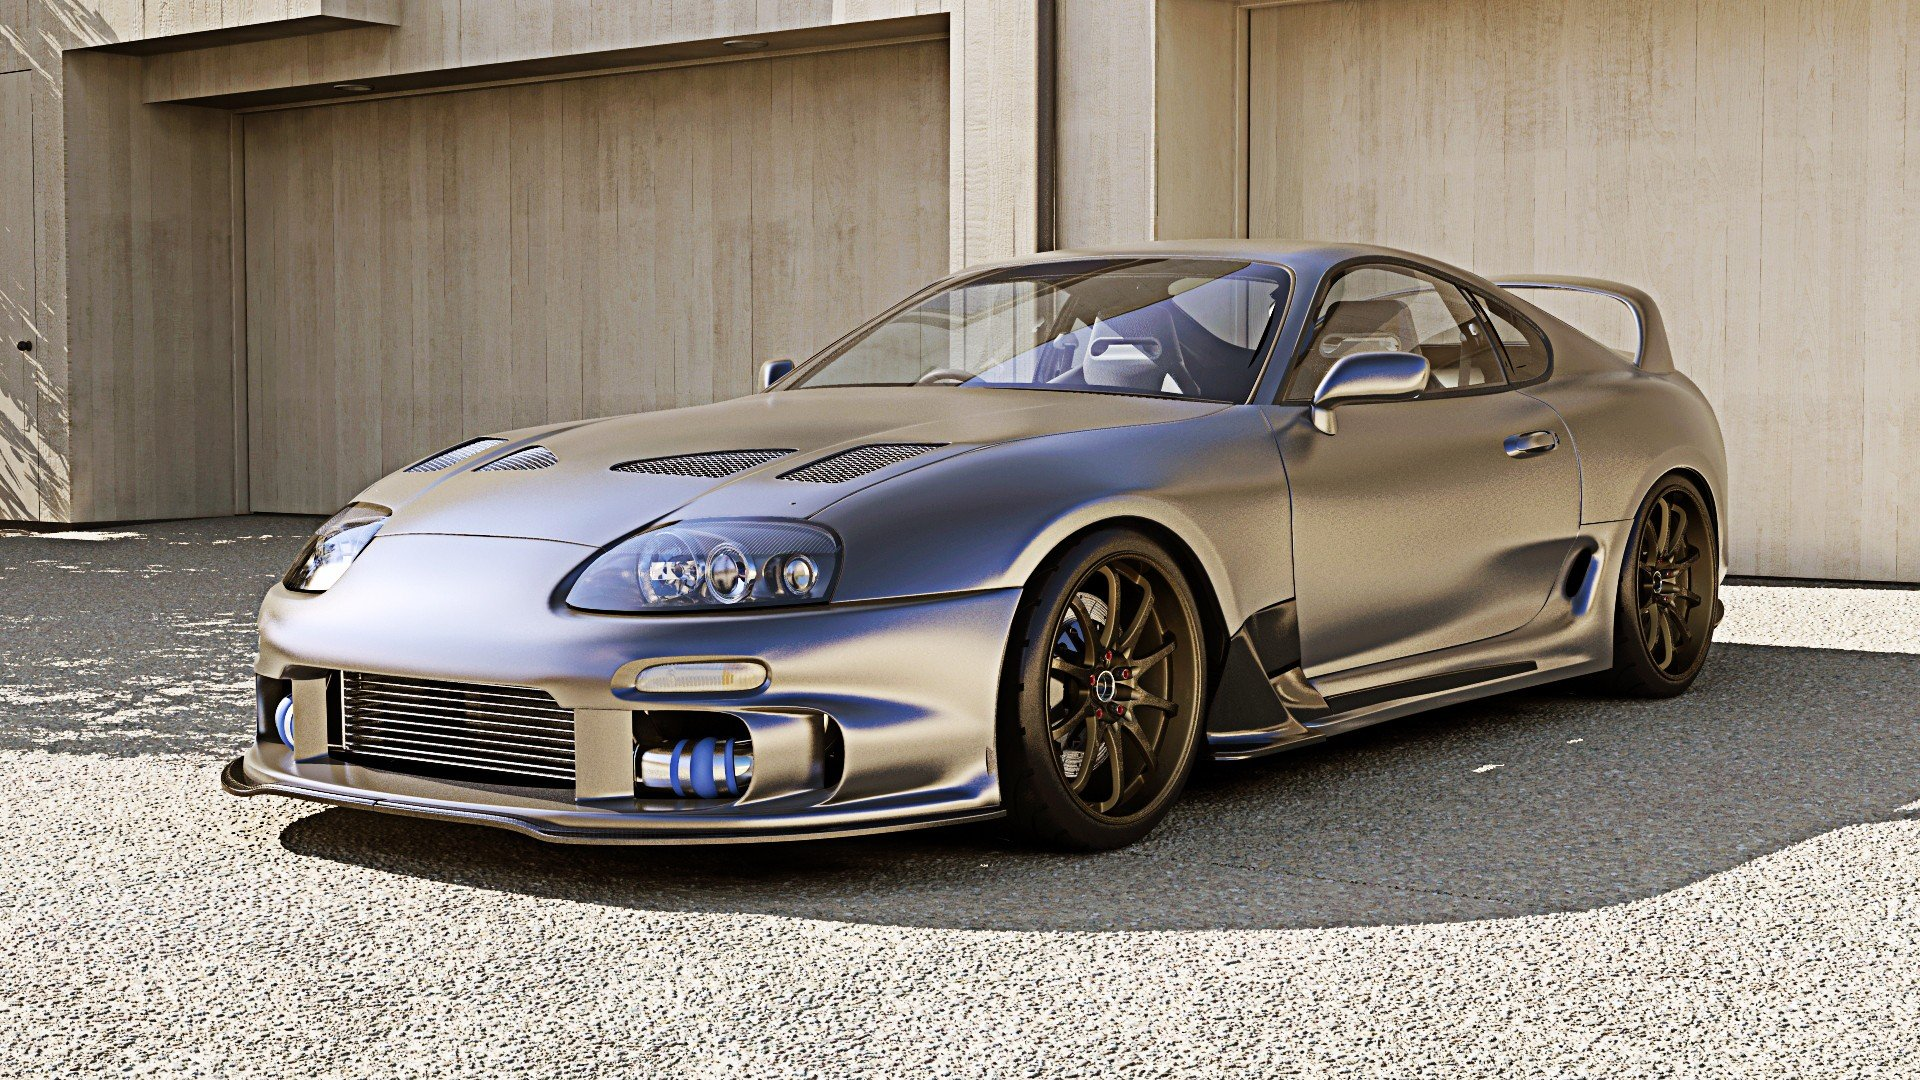 Toyota supra tuning cars coupe japan turbo wallpaper 1920x1080 1920x1080